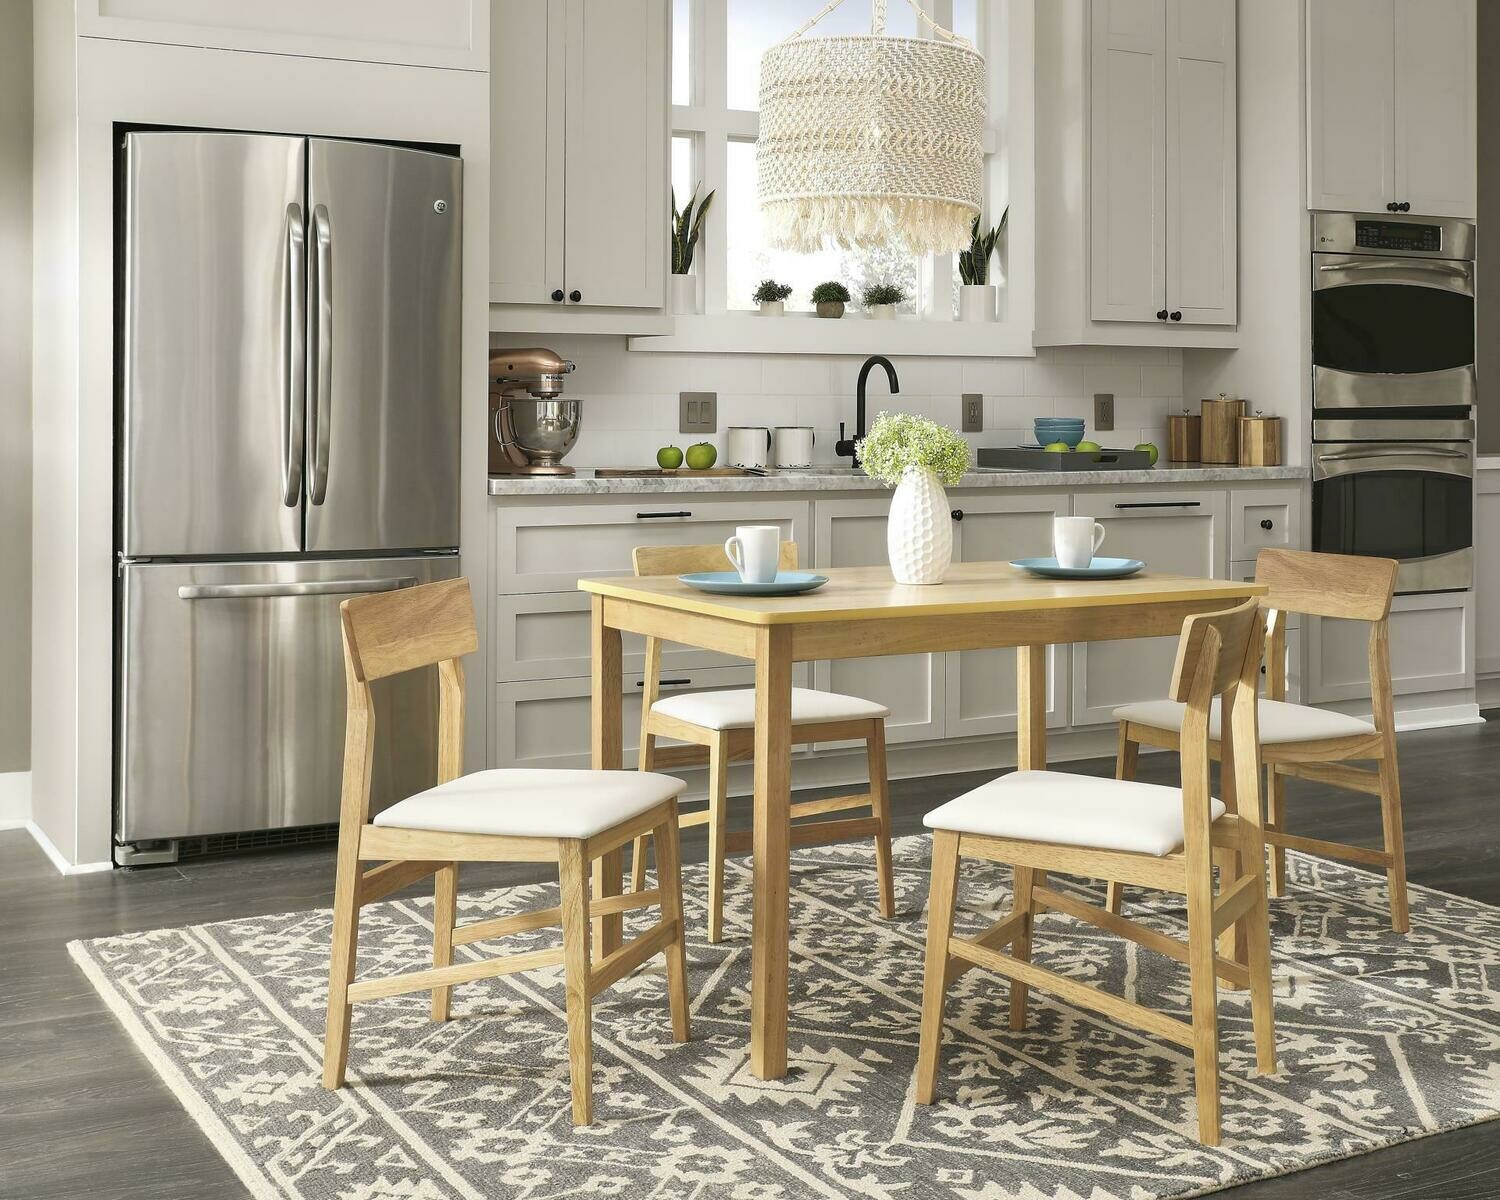 RIno Dining Table w/ 4 chairs (D859-10G)